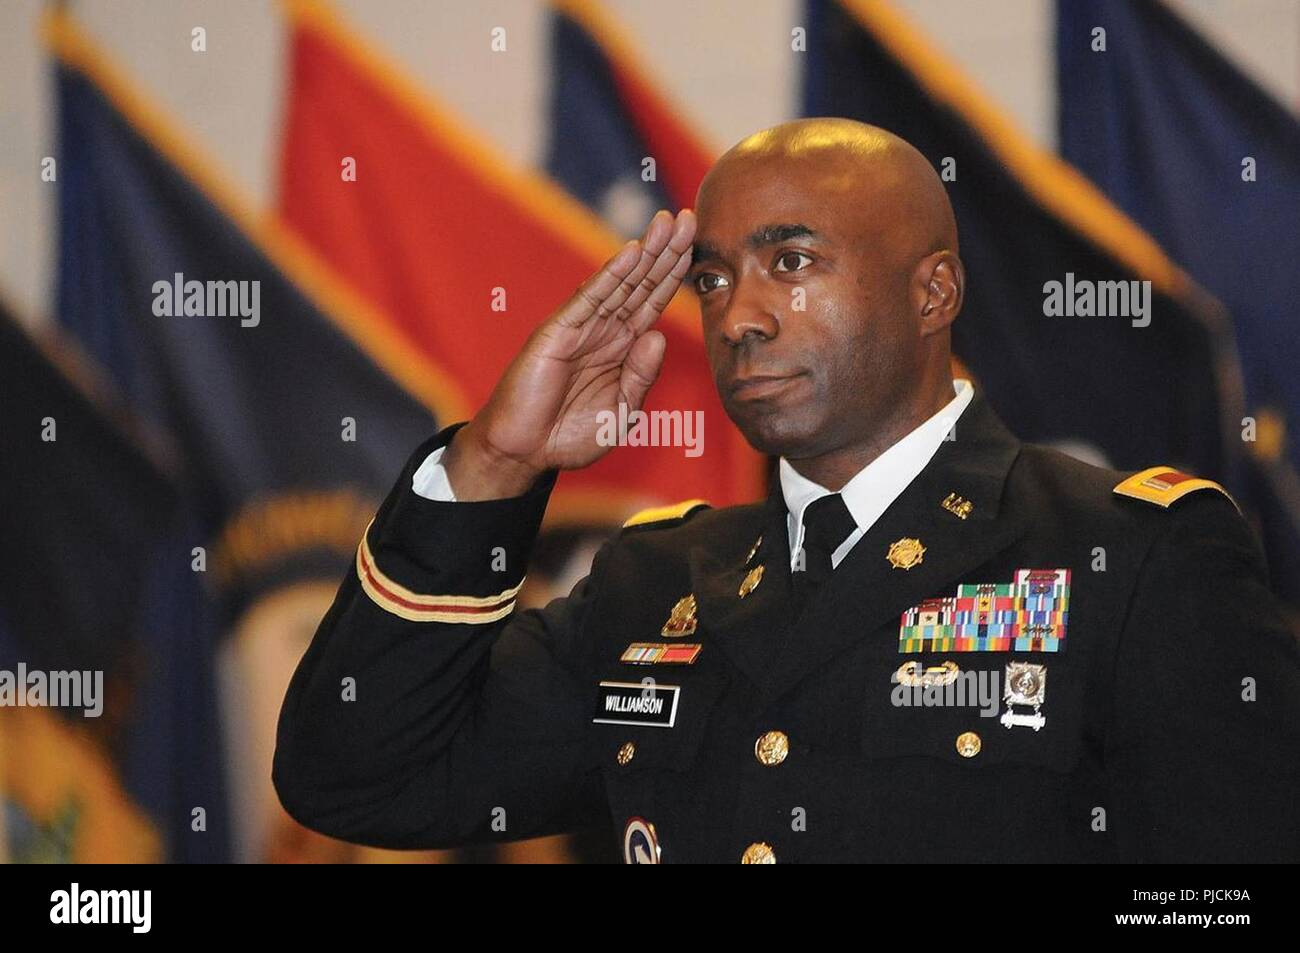 Chief Warrant Officer 5 Jermain C. Williamson Sr., the new Transportation Corps Regimental Warrant Officer, salutes during the Trans. Corps RWO Change of Command Ceremony July 16 at Wylie Hall. Williamson succeeded CWO 5 Donald E. Berg Jr. - Stock Image